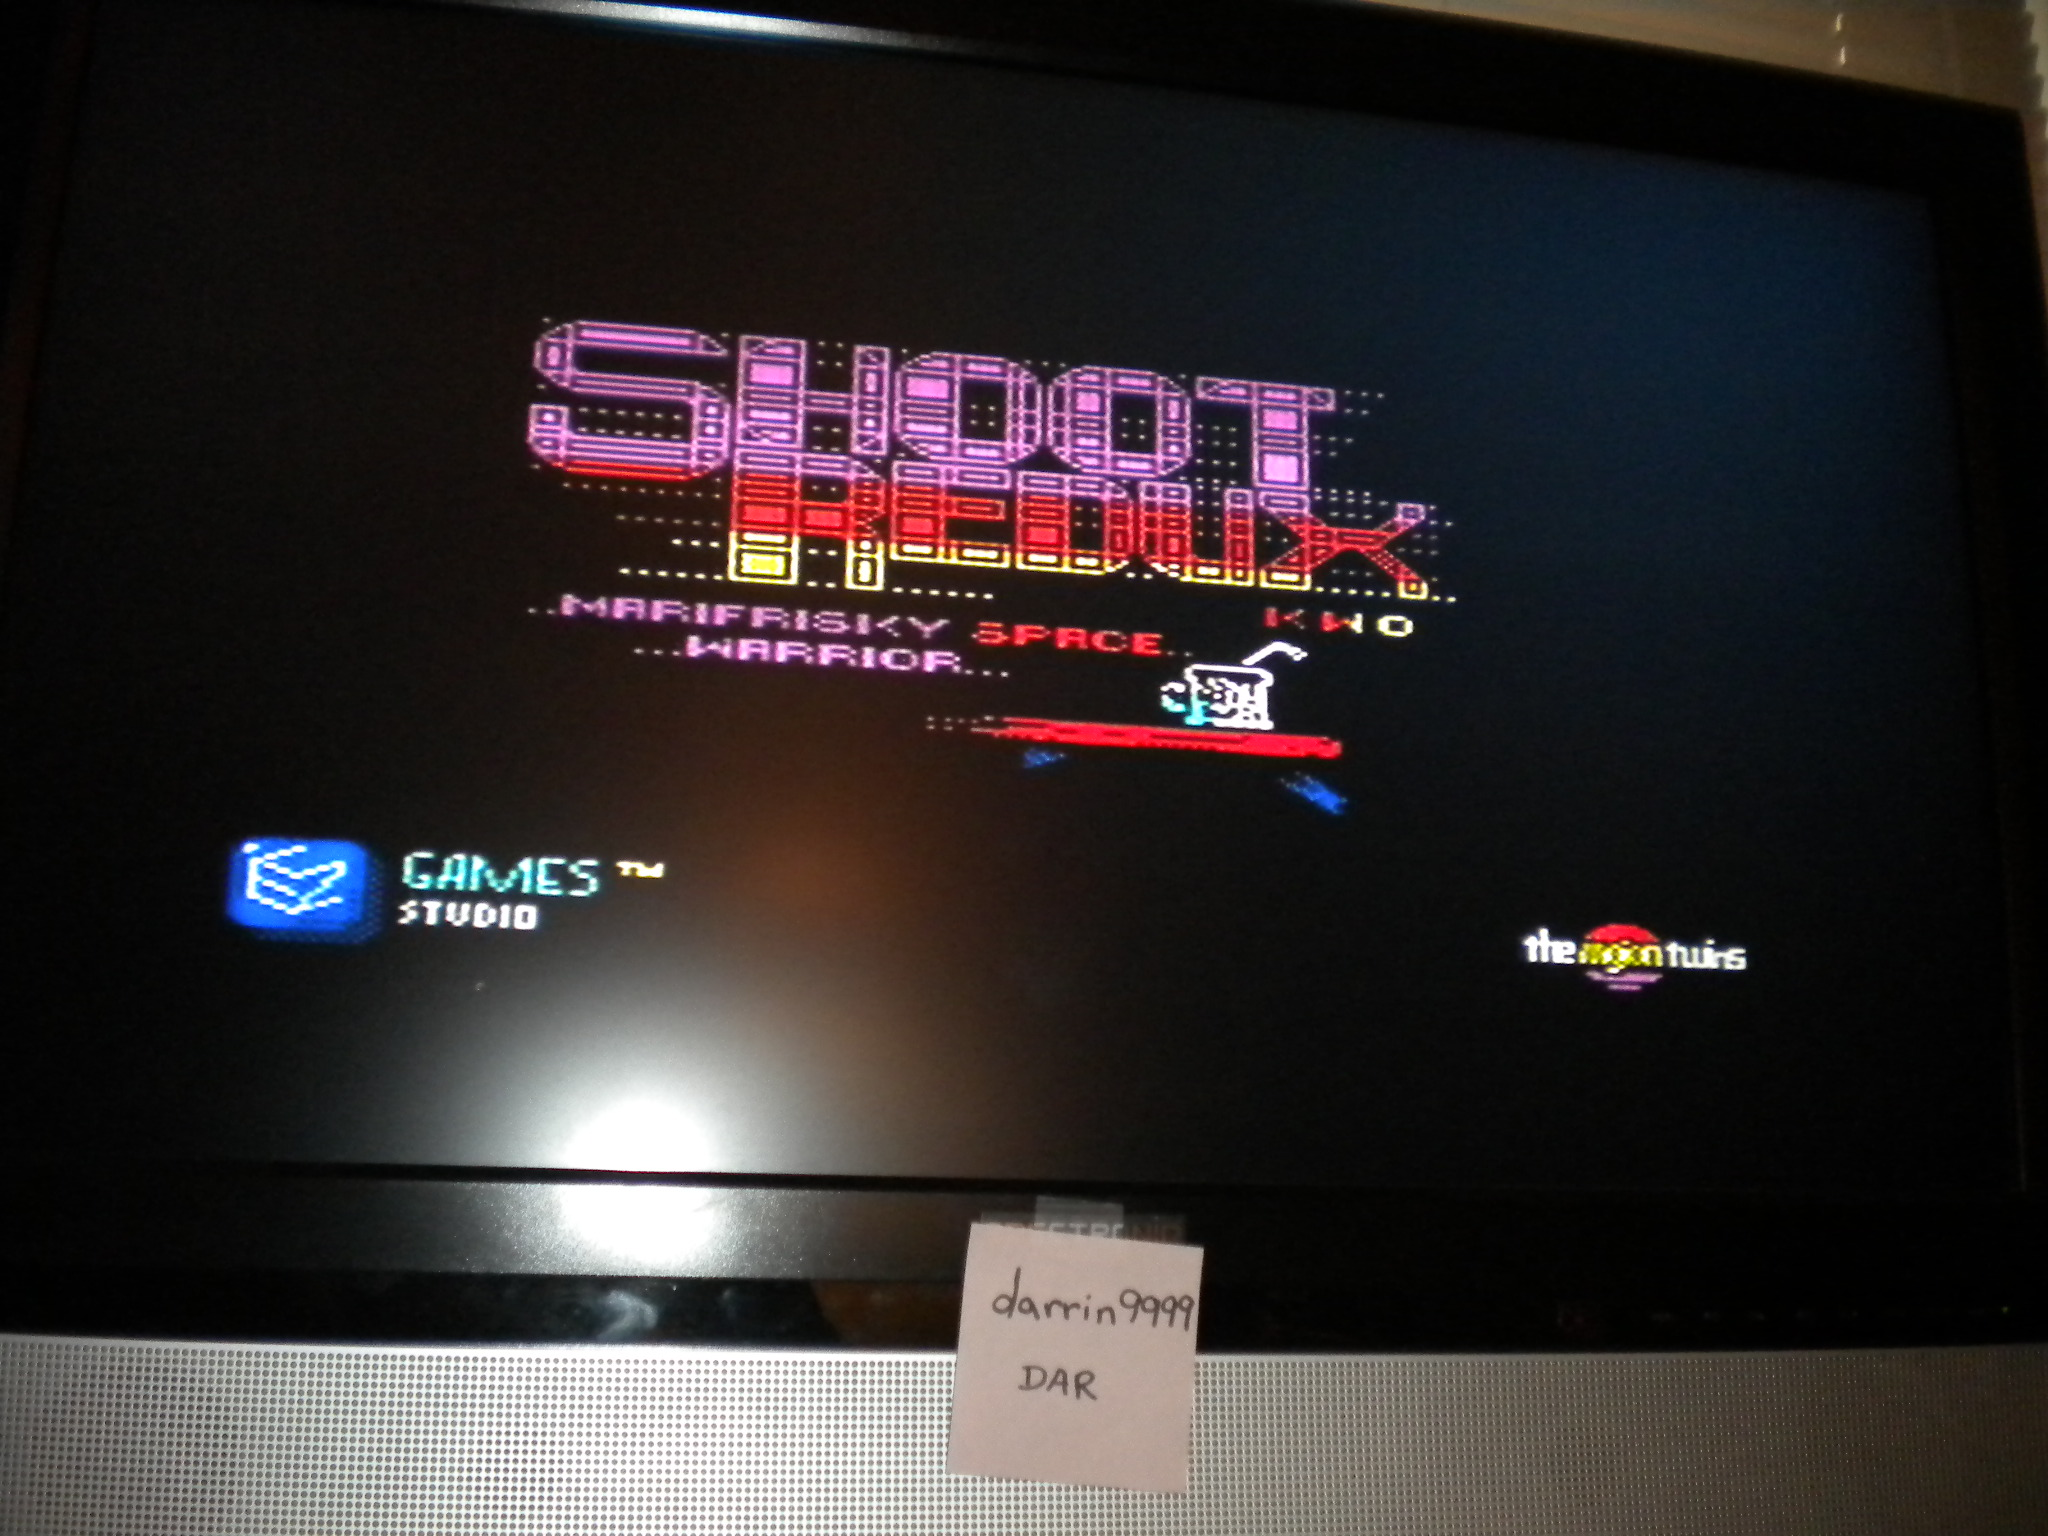 darrin9999: Shoot Redux [Difficulty Level: Free Choice] (ZX Spectrum Emulated) 264 points on 2016-11-13 07:46:40